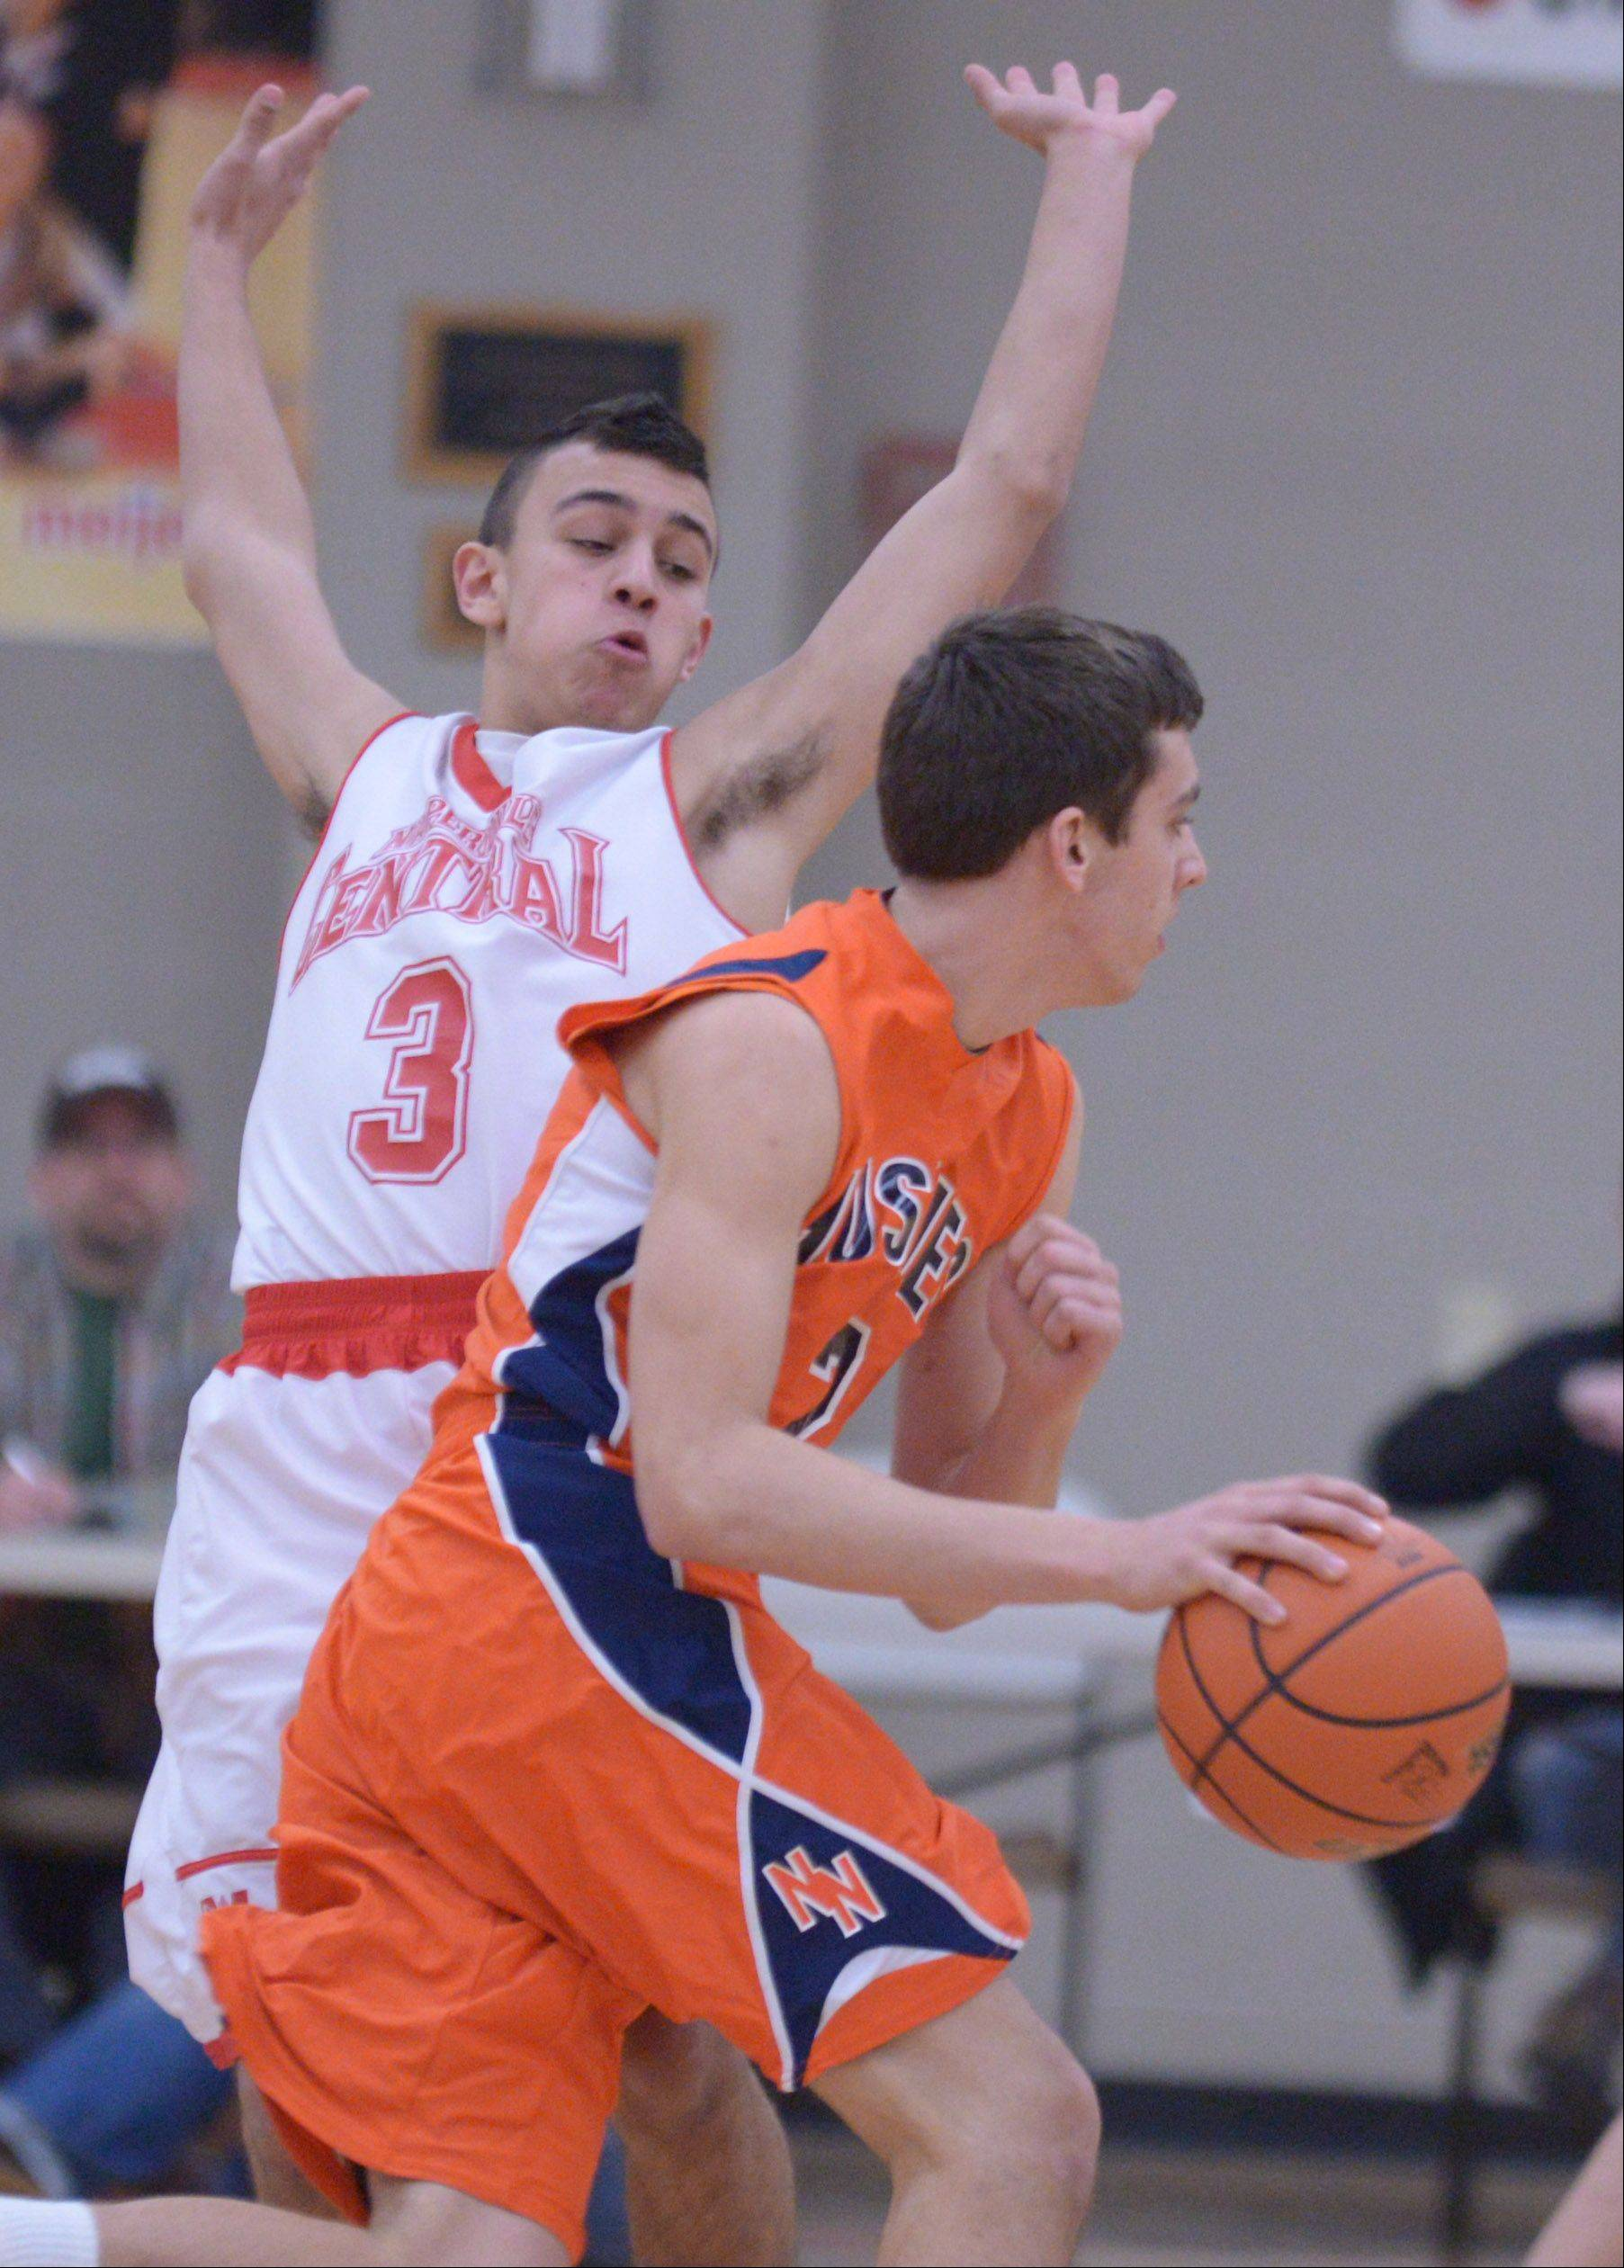 Anthony Rehayem of Naperville North pushes his way past Nicky Lopez of Naperville Central.